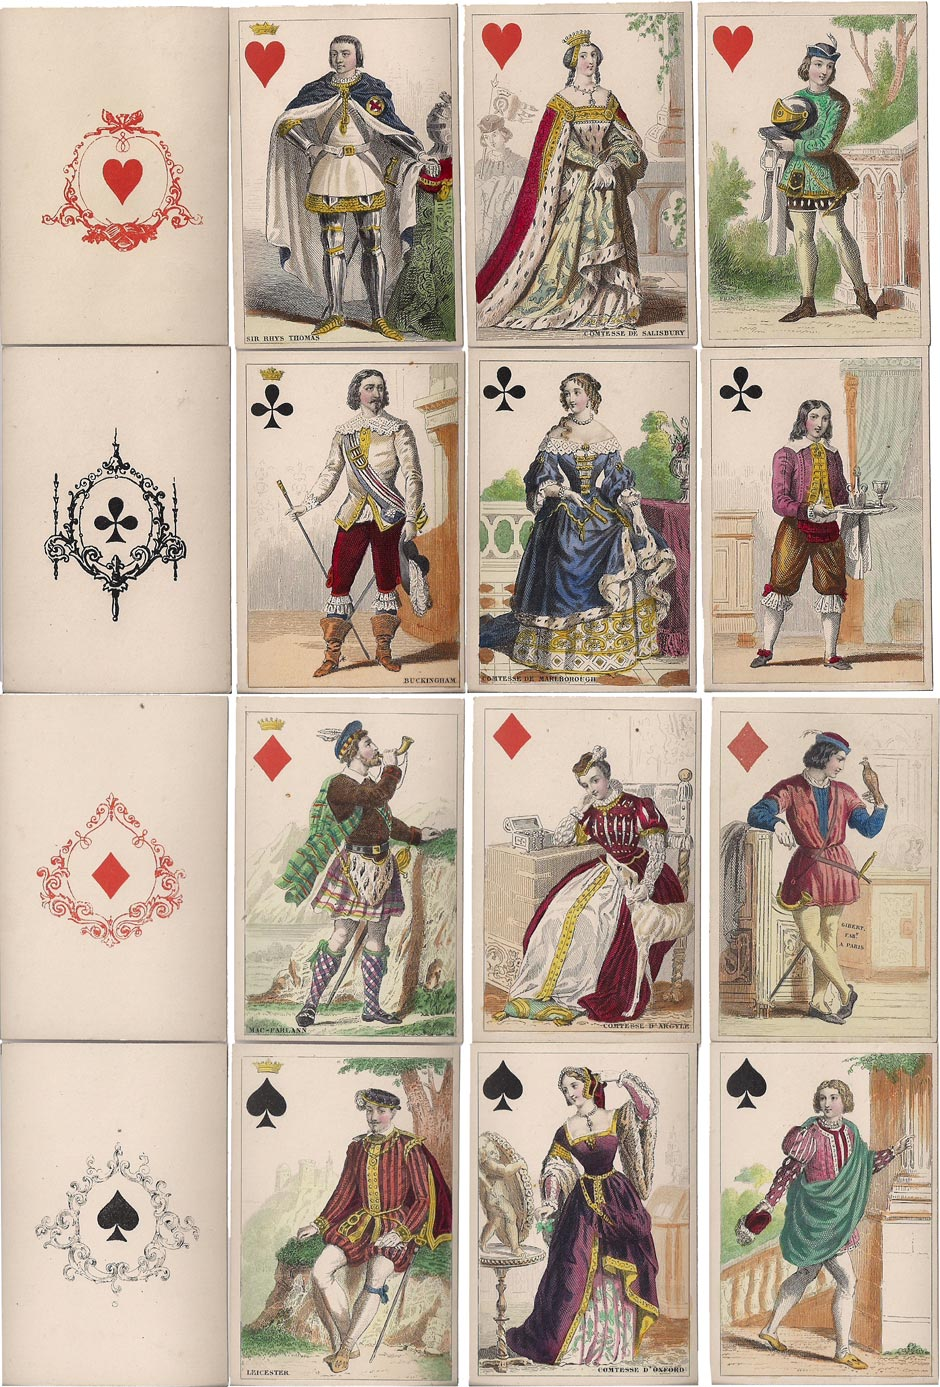 cards from a hand-coloured costume set by O. Gibert, Paris, c.1856